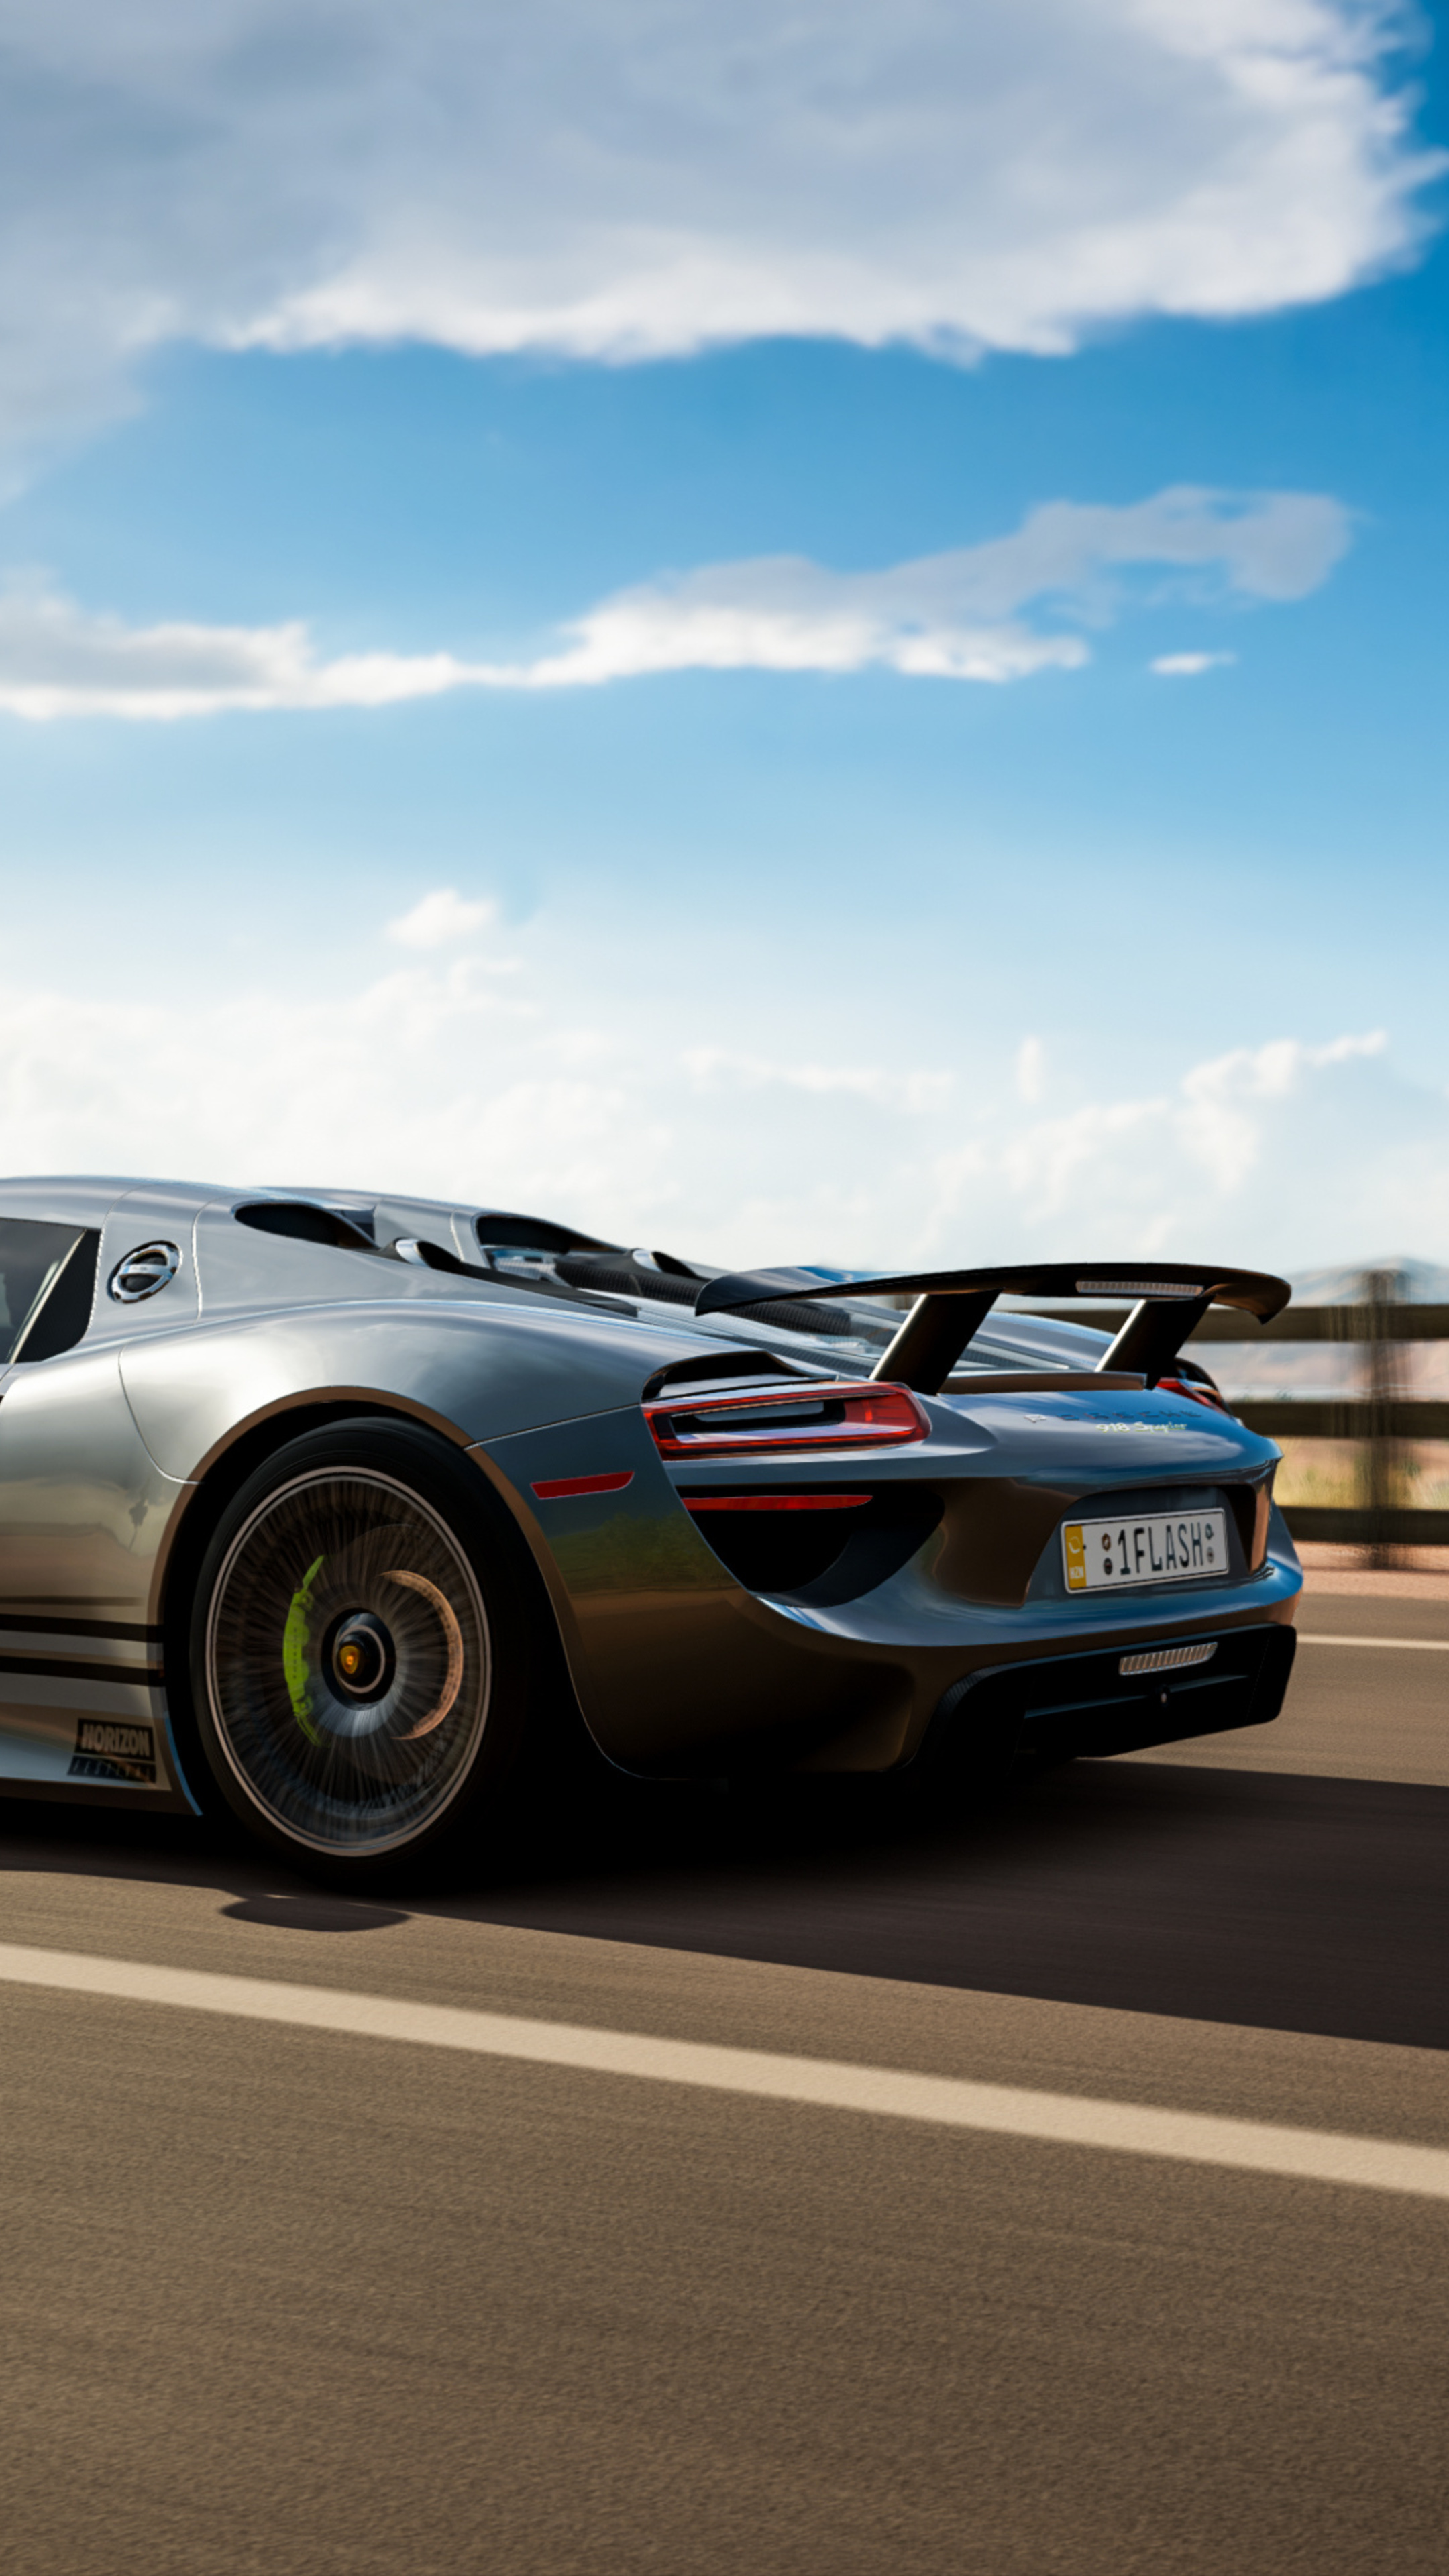 marvelous porsche 918 spyder forza horizon 2 noisiestpassenger. Black Bedroom Furniture Sets. Home Design Ideas